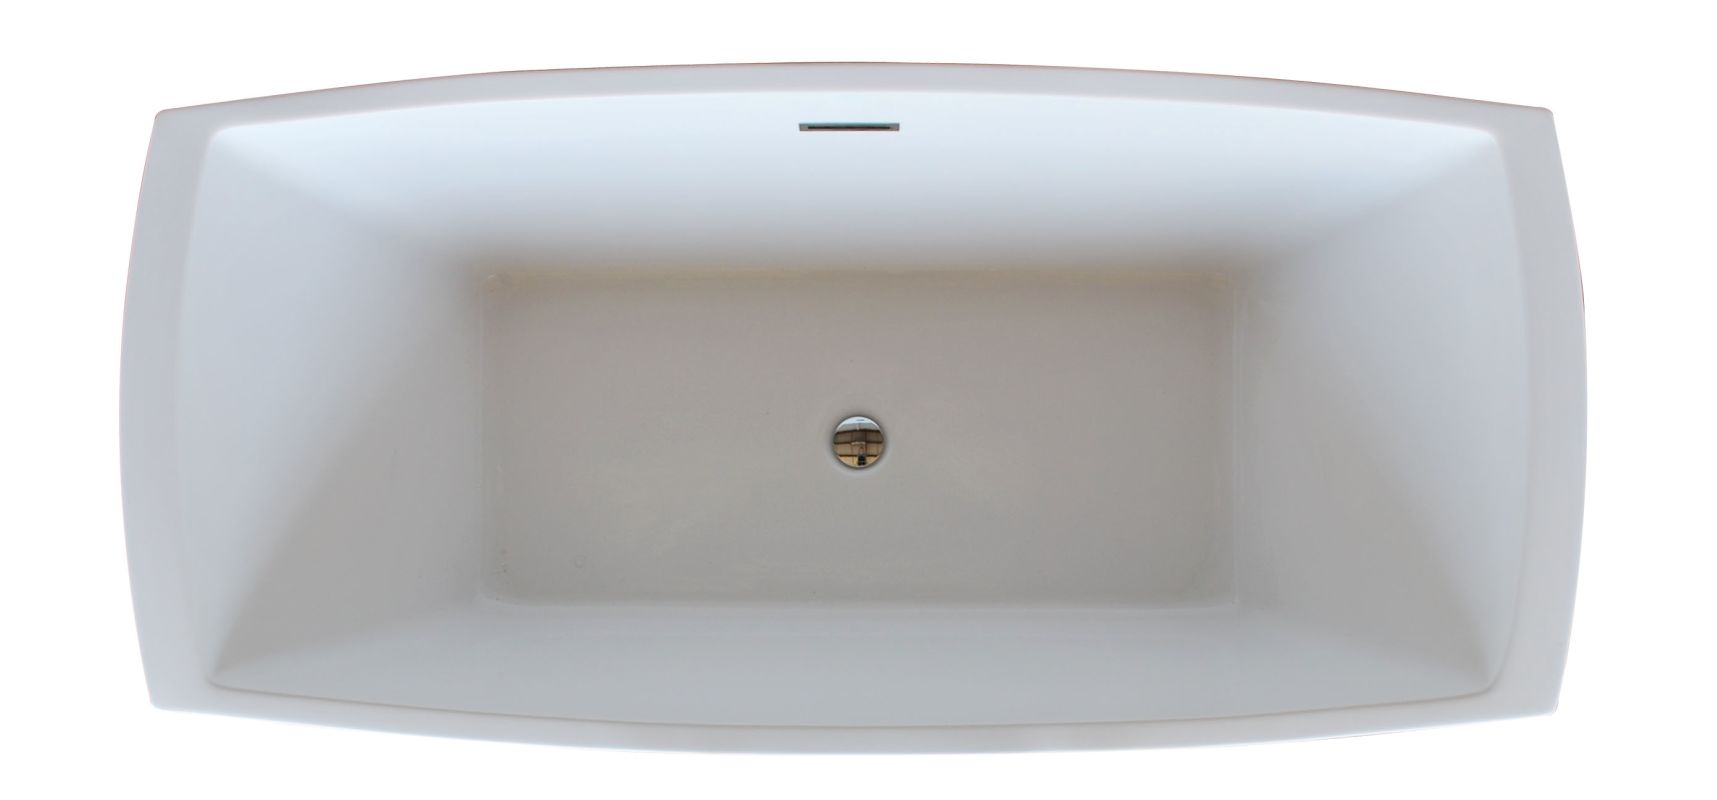 Av6731atsxcwxx in white by avano for Best acrylic bathtub to buy